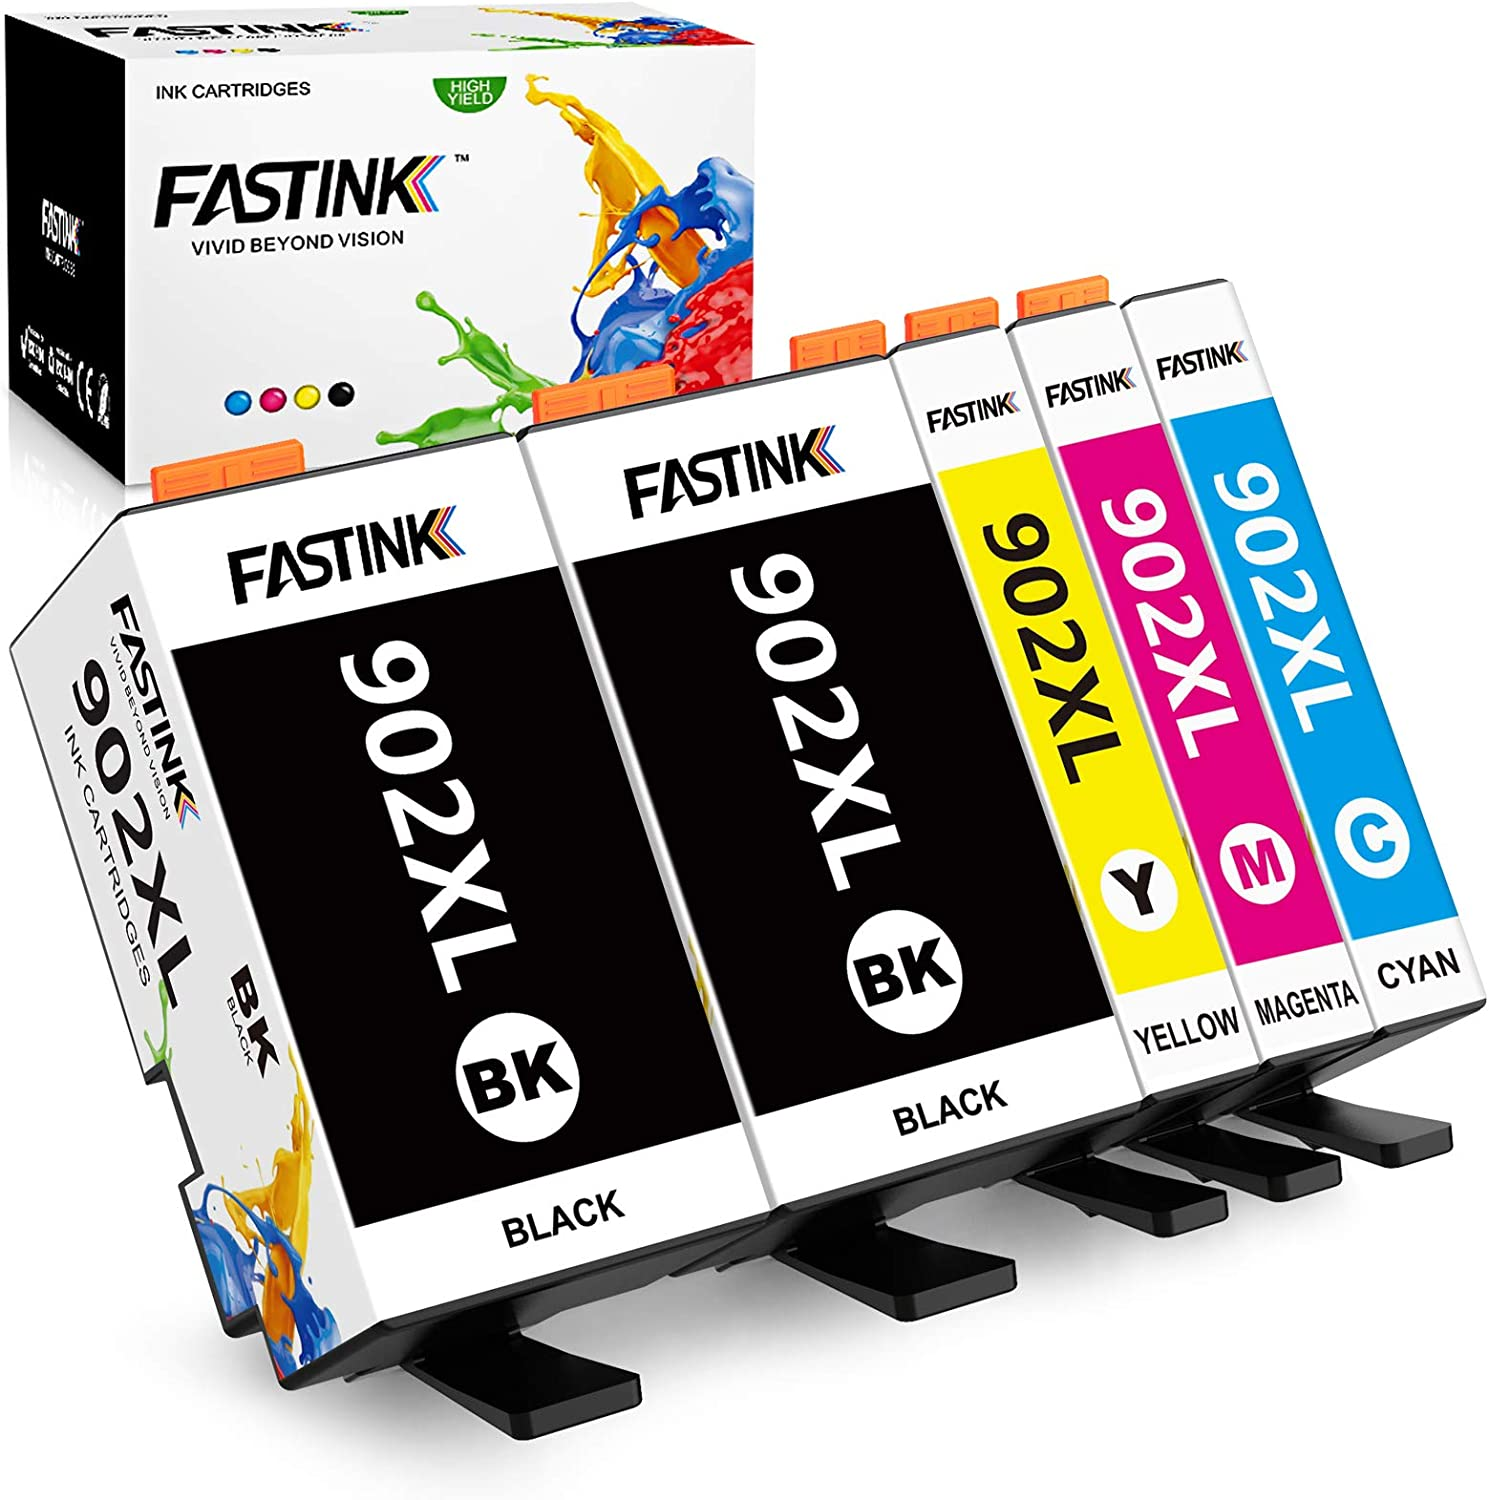 FASTINK Compatible HP Ink Cartridges (Newest Chip) Replacement for HP 902 XL 902XL for HP OfficeJet Pro 6954 6960 6962 6968 6978 Printer,5-Pack, (2 Black, 1 Cyan, 1 megenta, 1 Yellow)